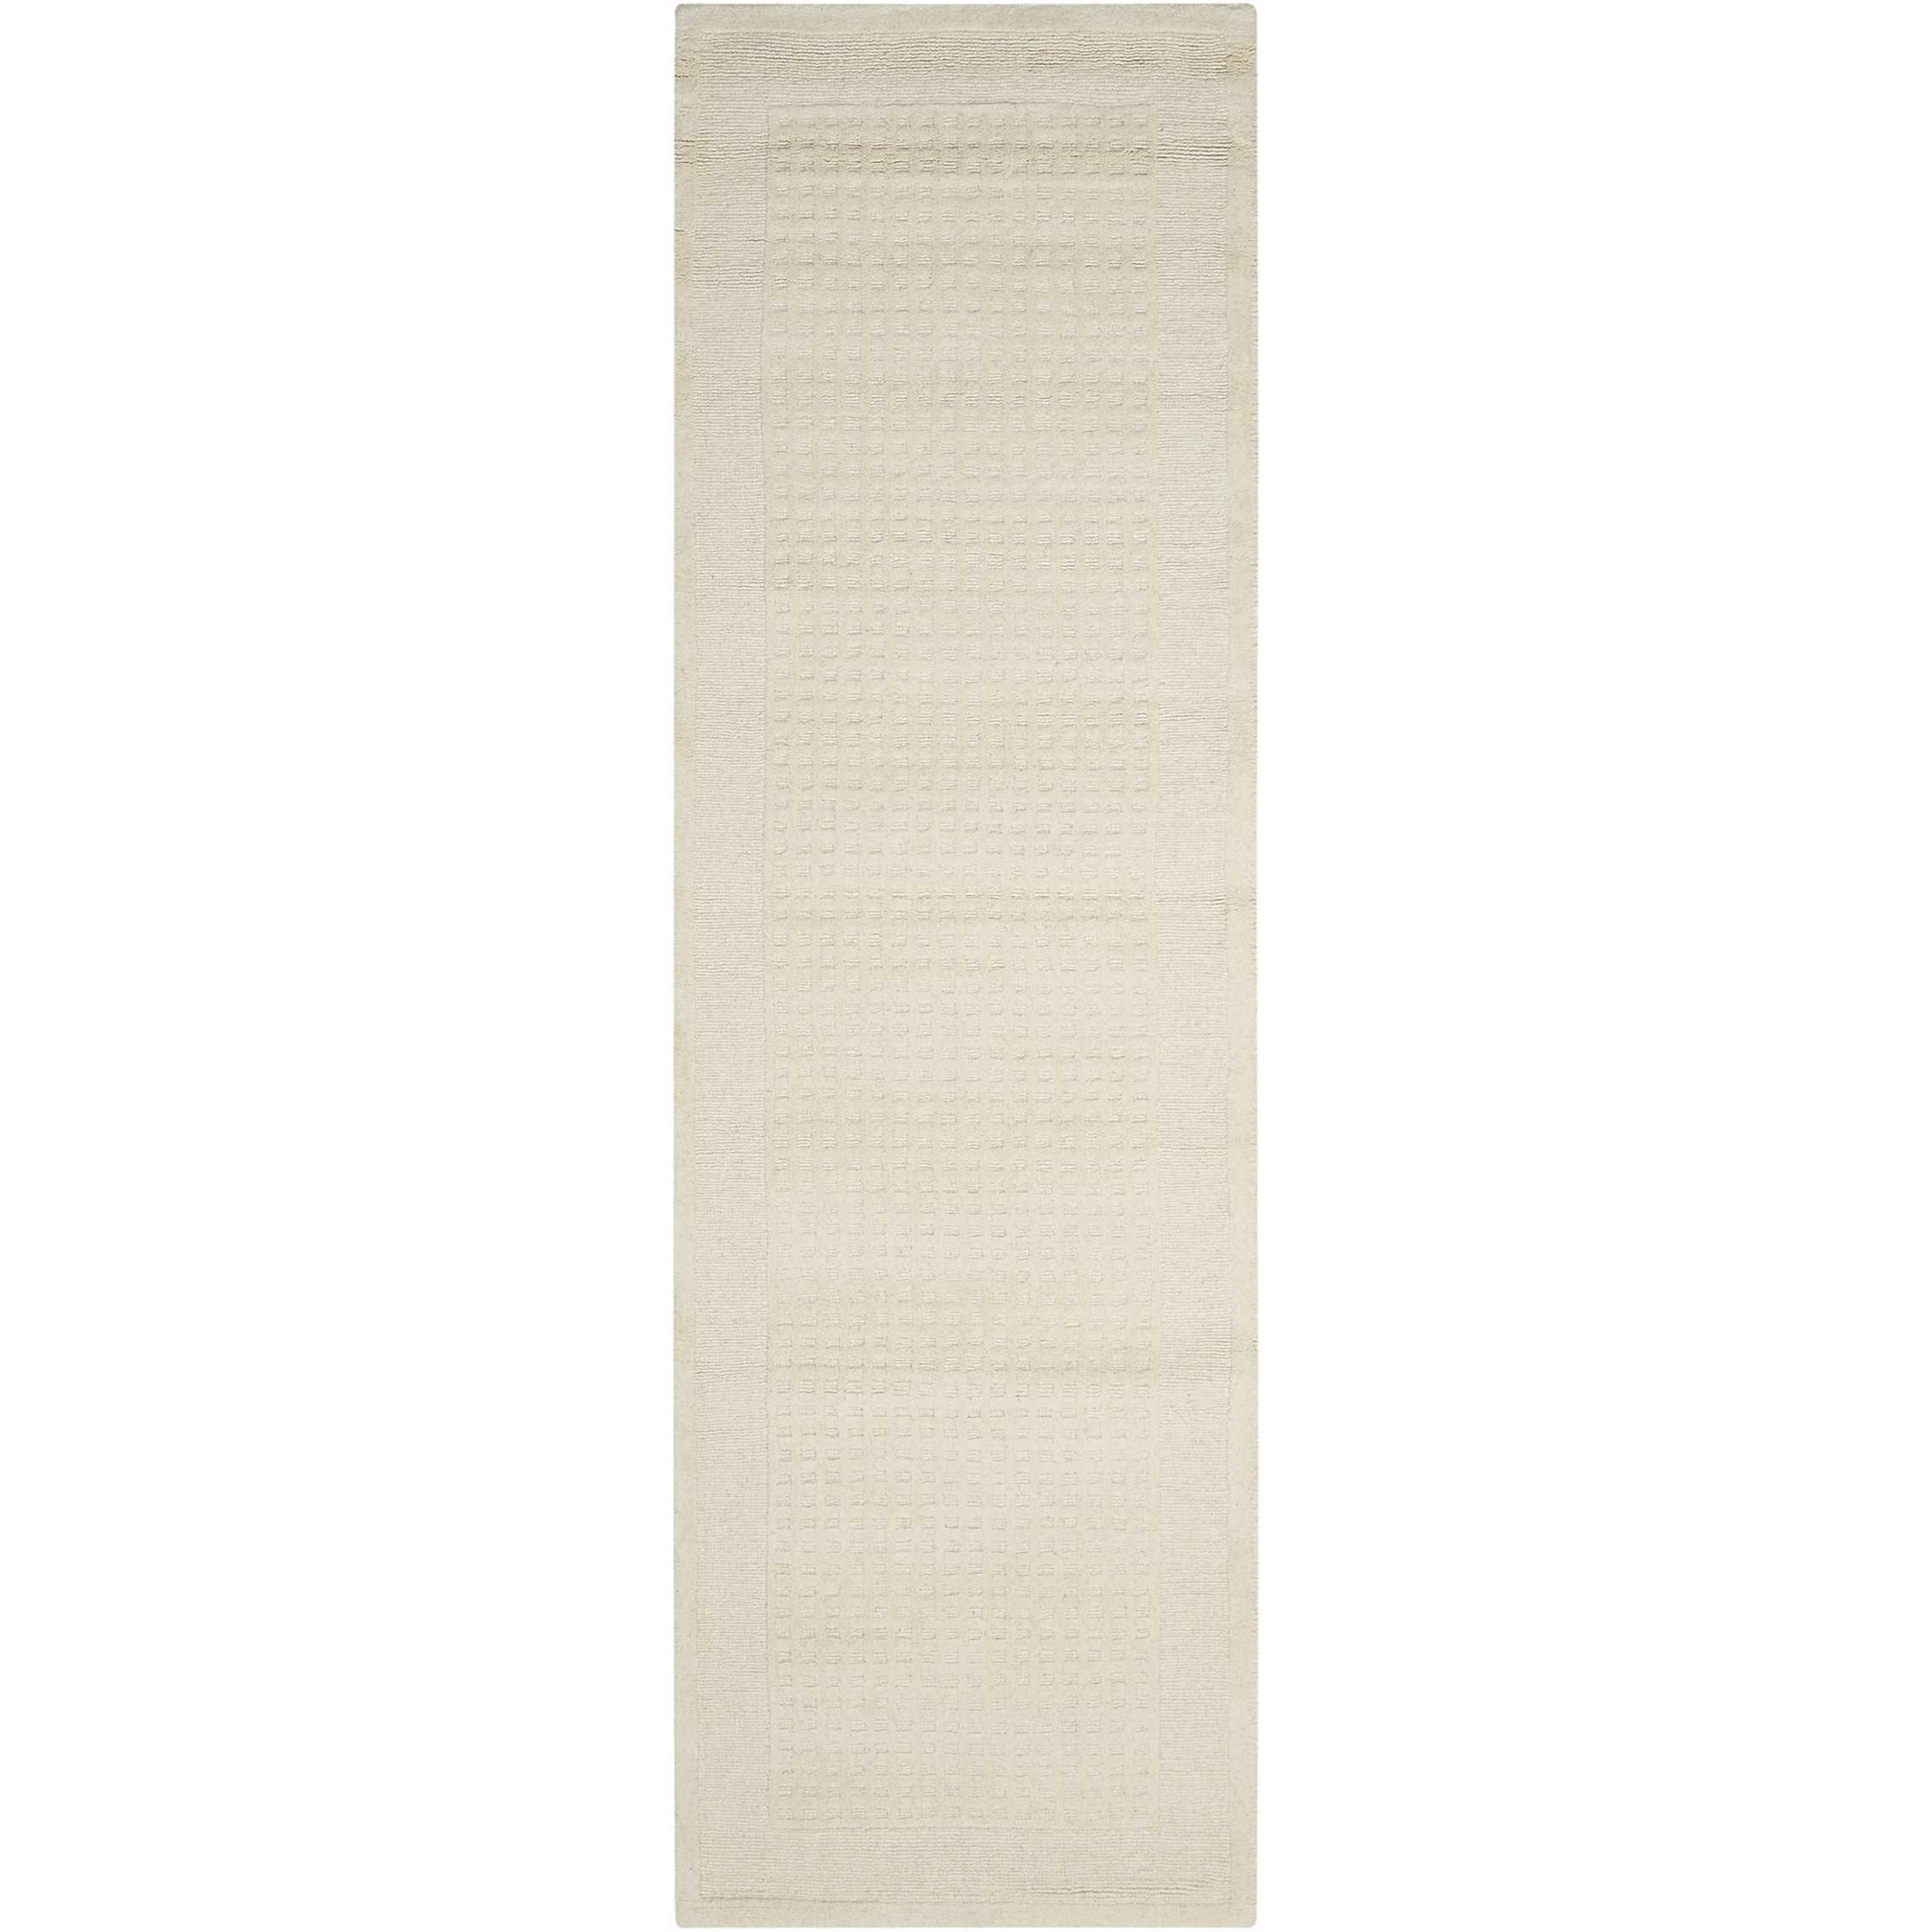 """Westport 2'3"""" x 7'6"""" Ivory Runner Rug by Nourison at Home Collections Furniture"""